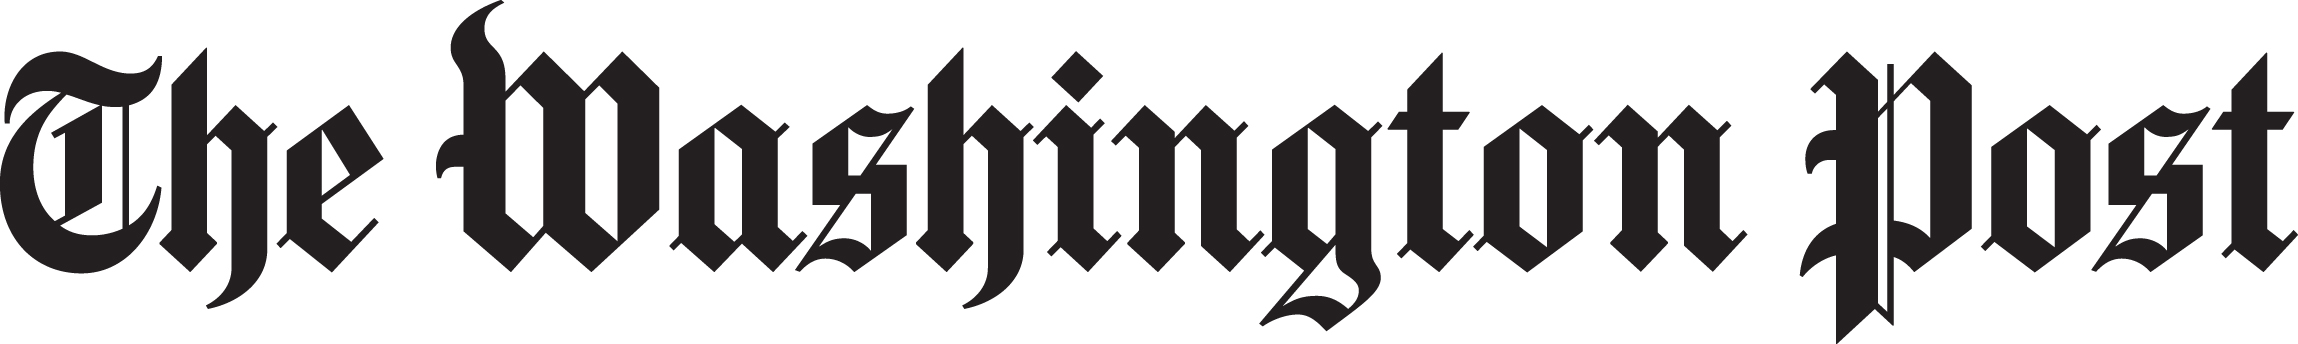 Wash Post logo Black